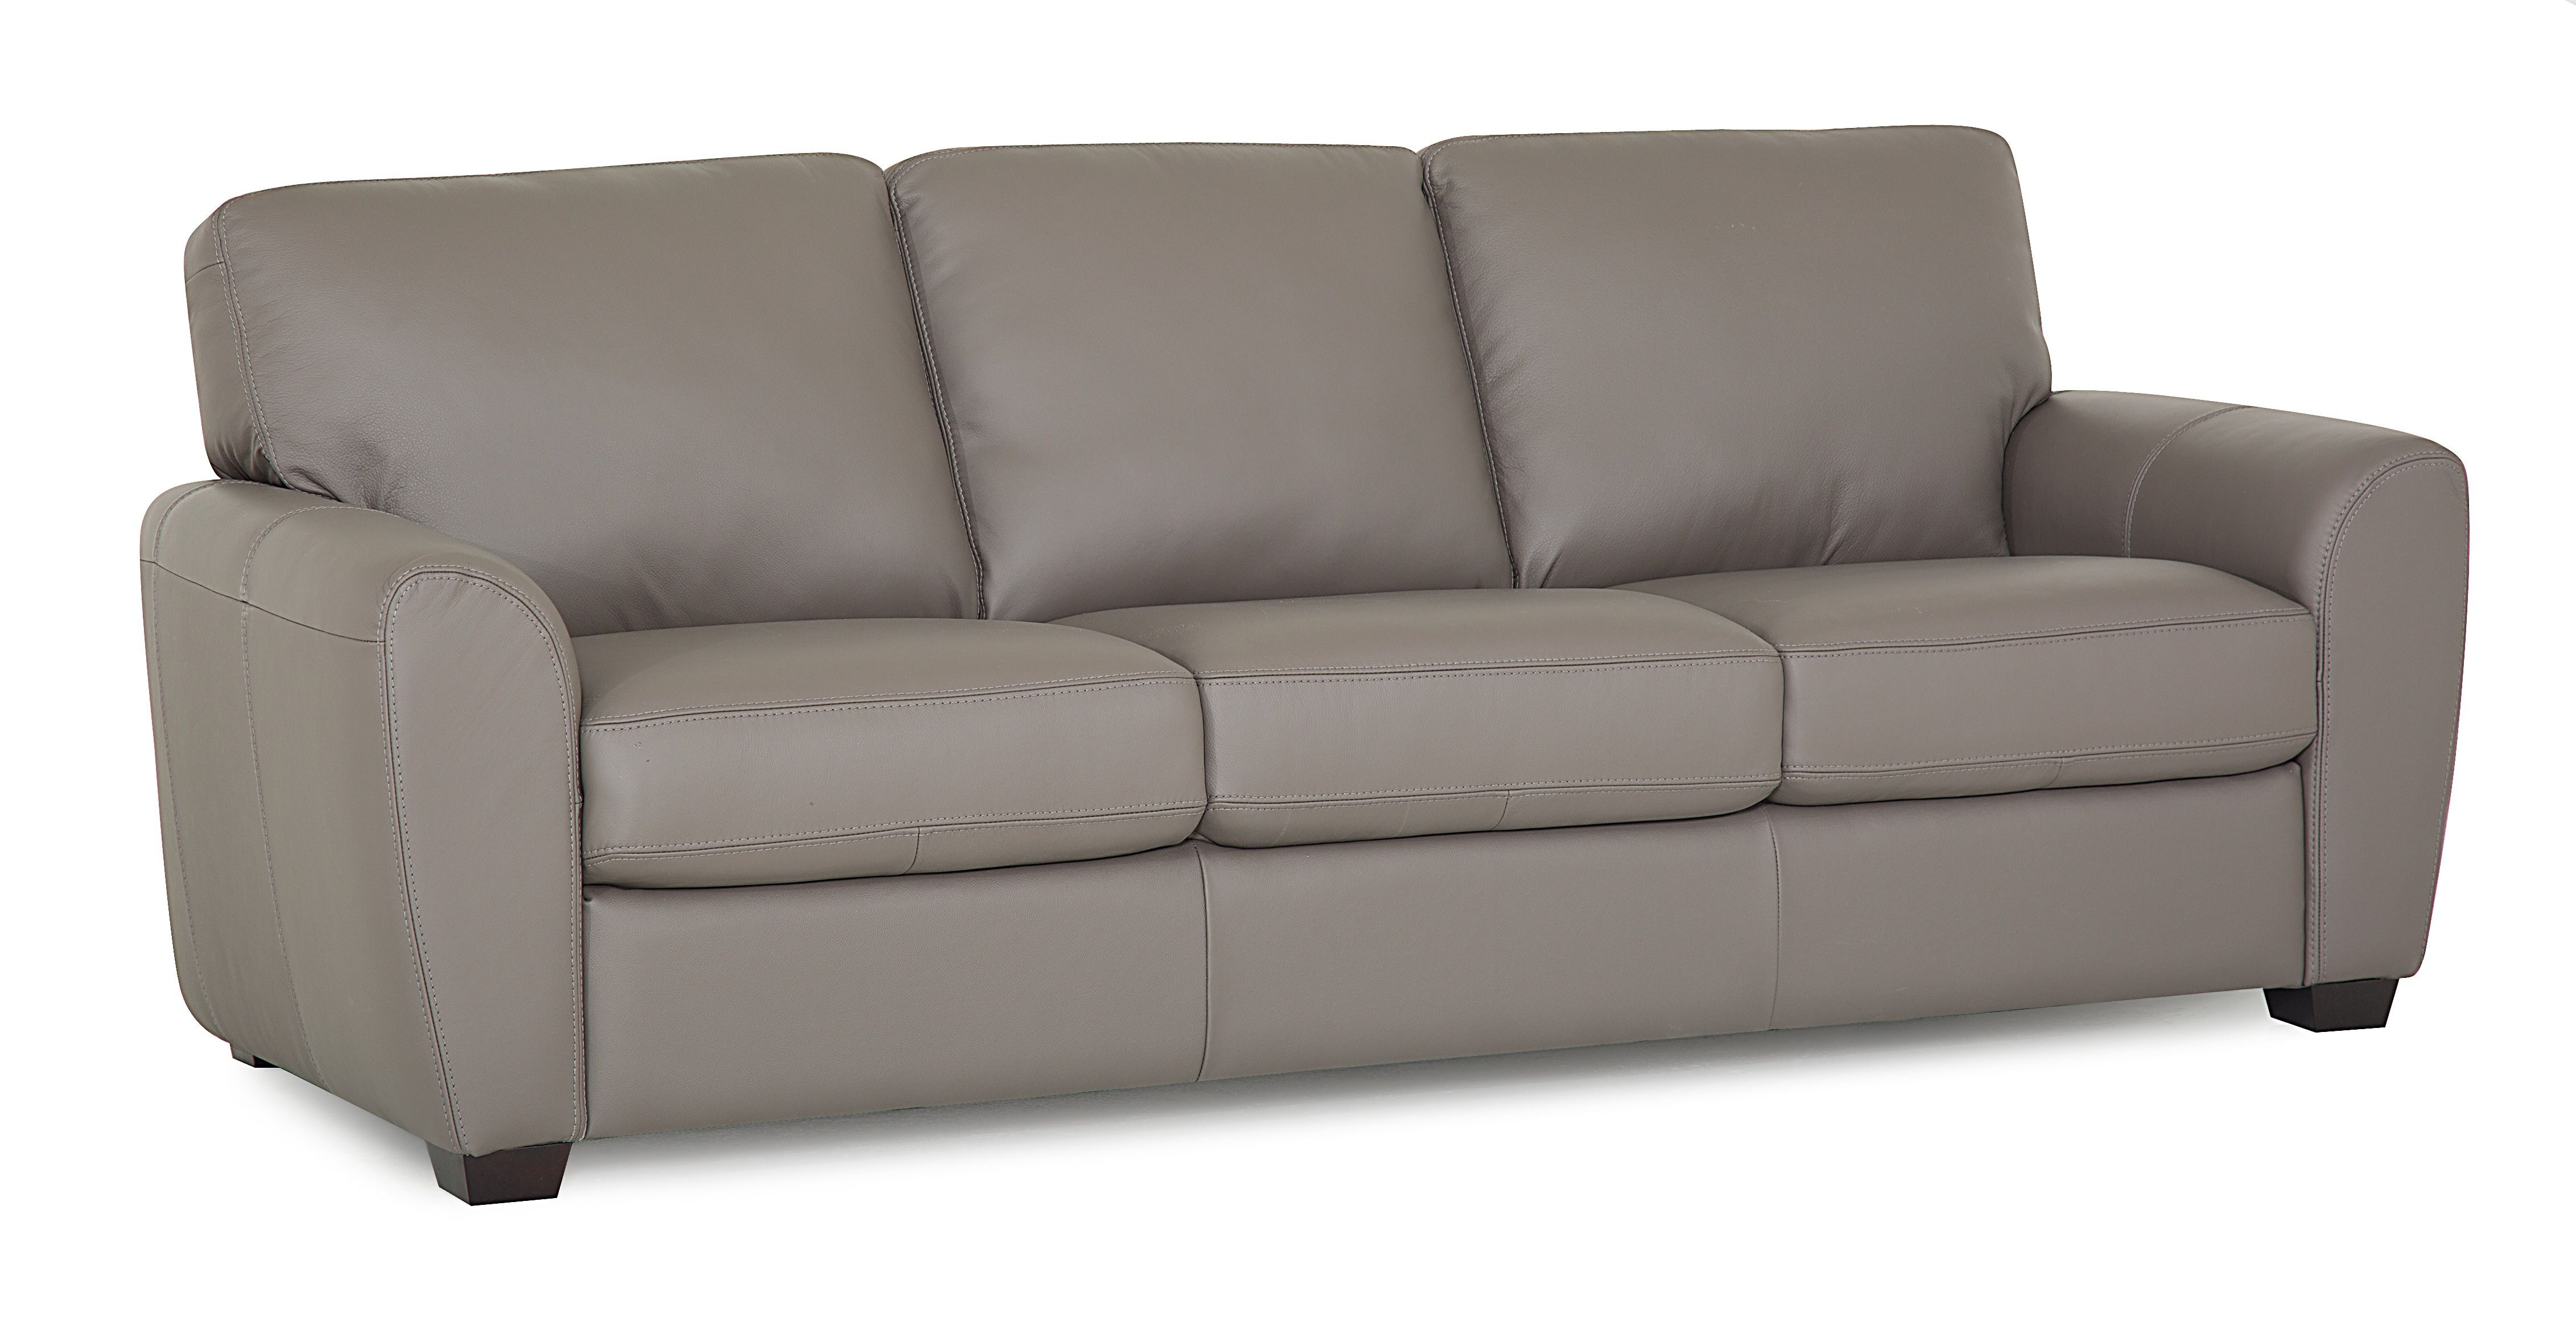 sofa store towson md room and board quality palliser furniture living 77881 01 the at